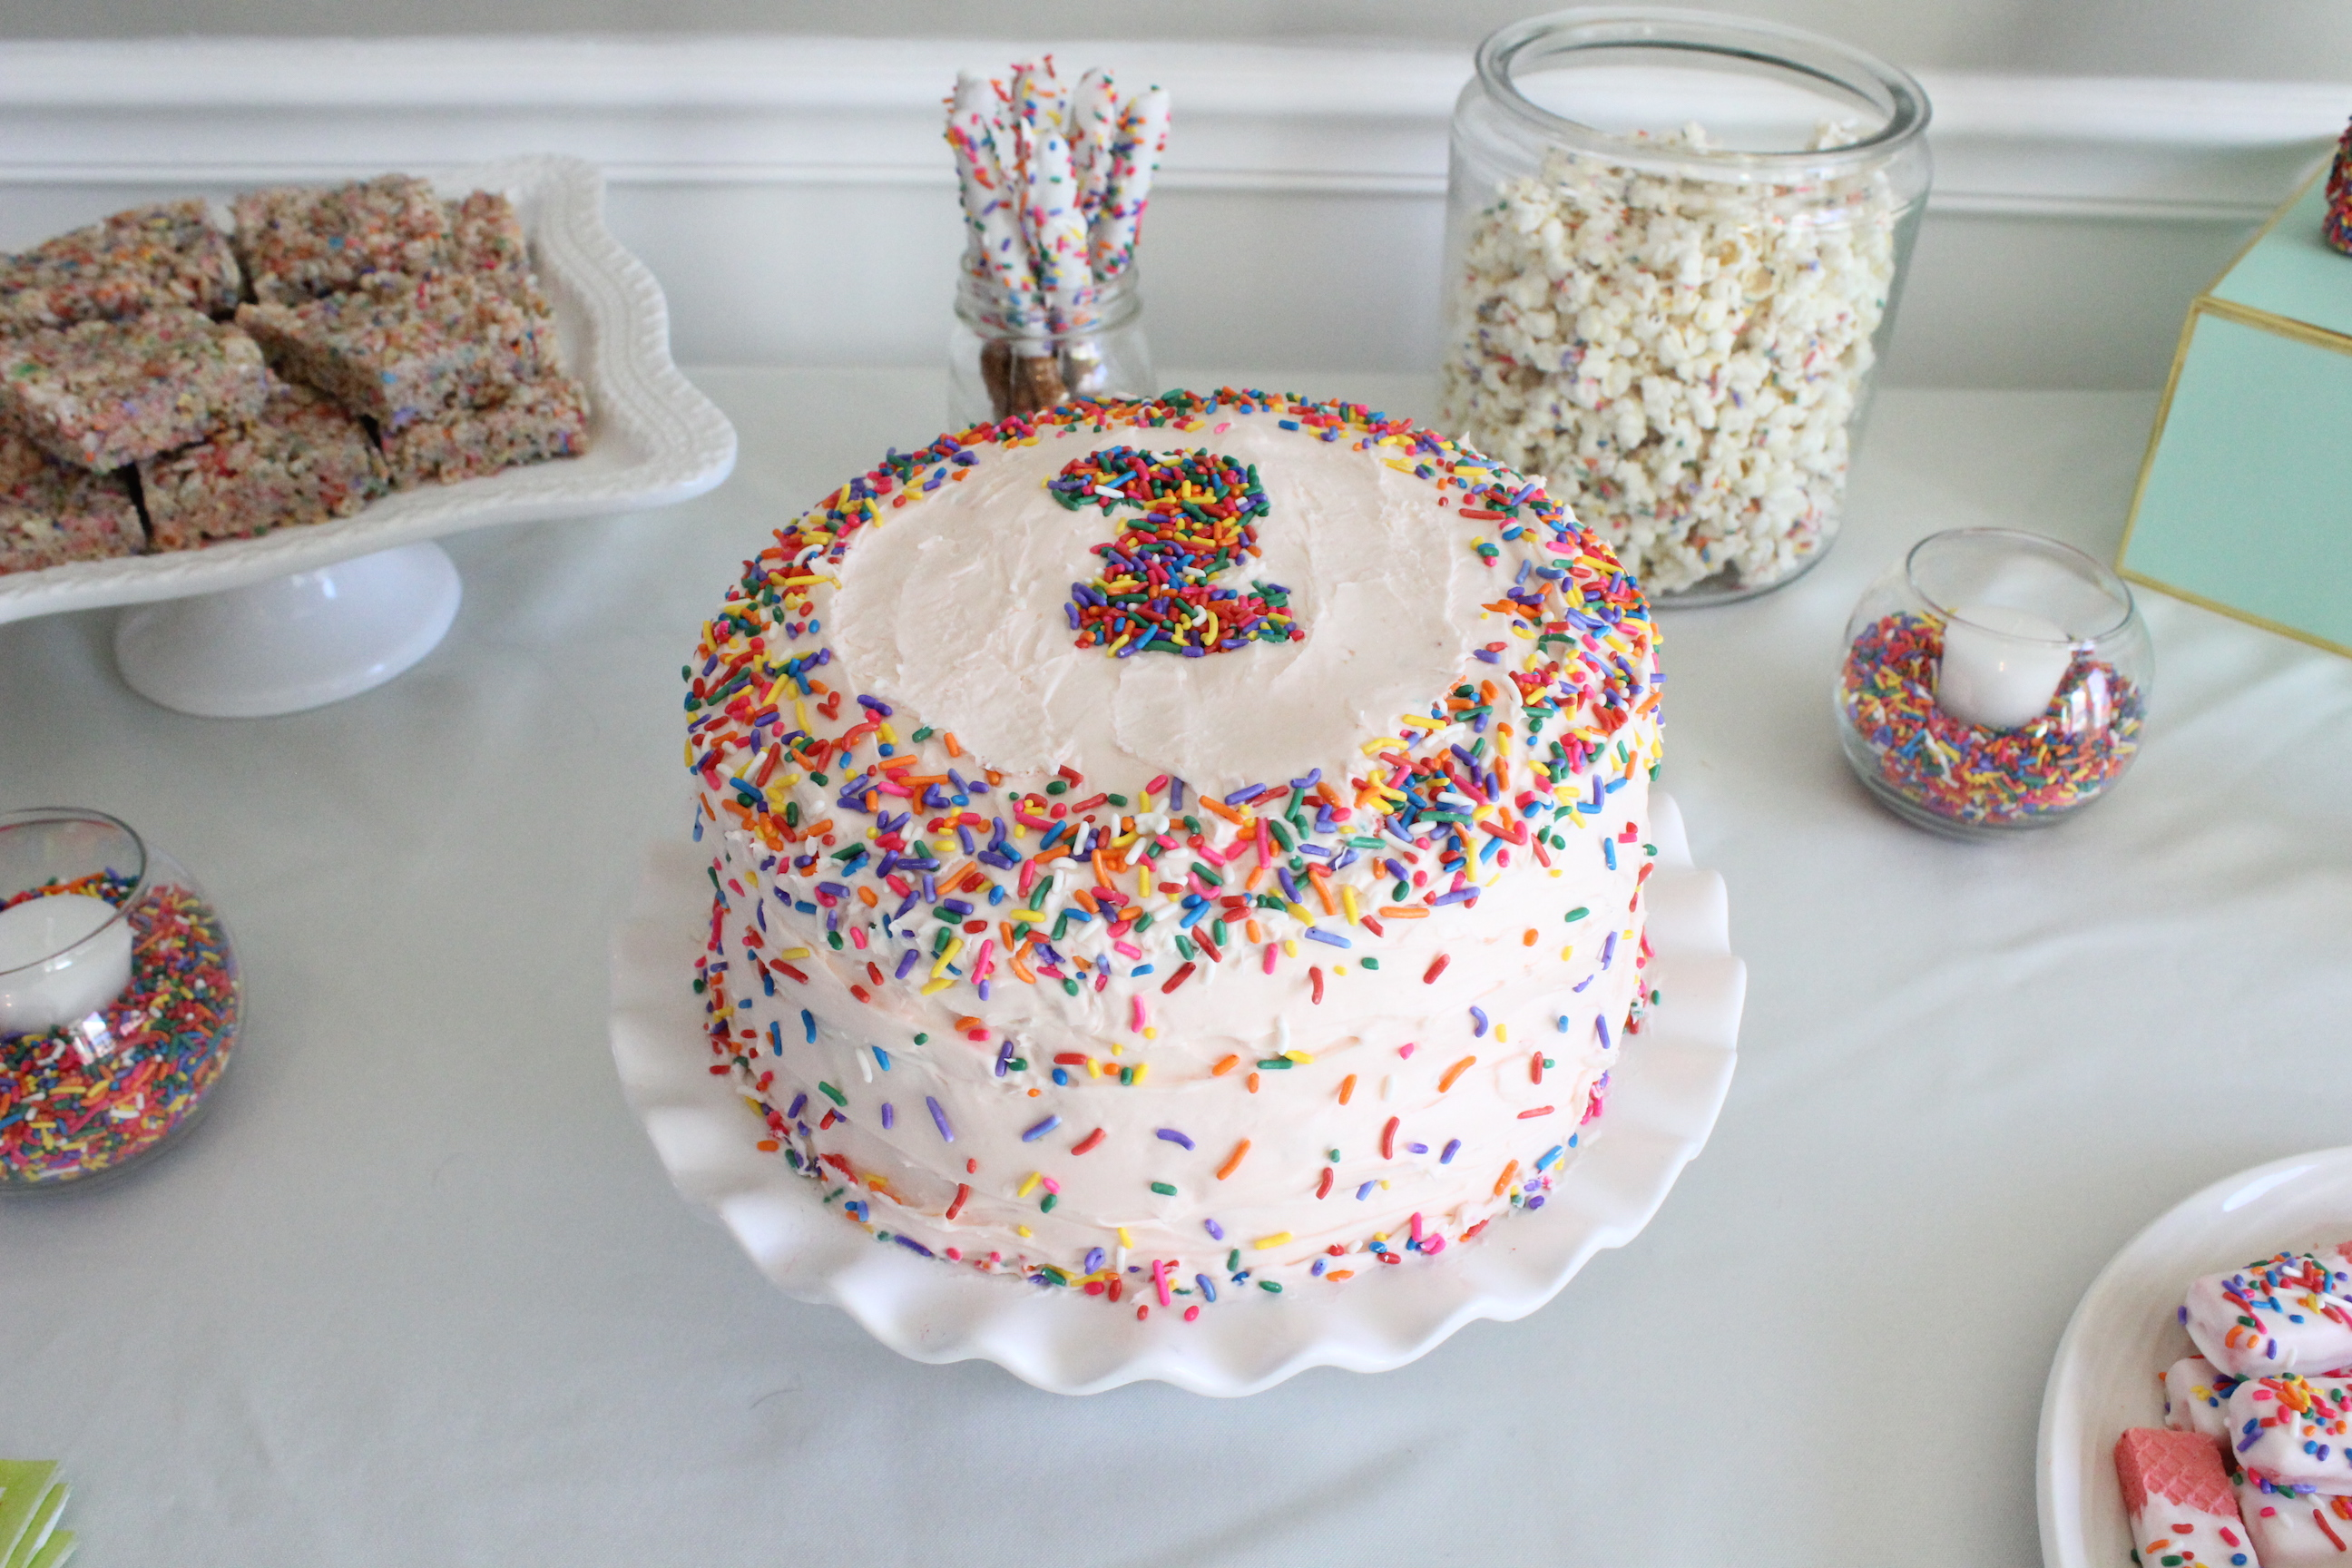 I Made Cupcake Puppy Chow Birthday Cake Batter Popcorn This Was So Good Funfetti Rice Crispy Treats And Then Dipped Pretzel Rods